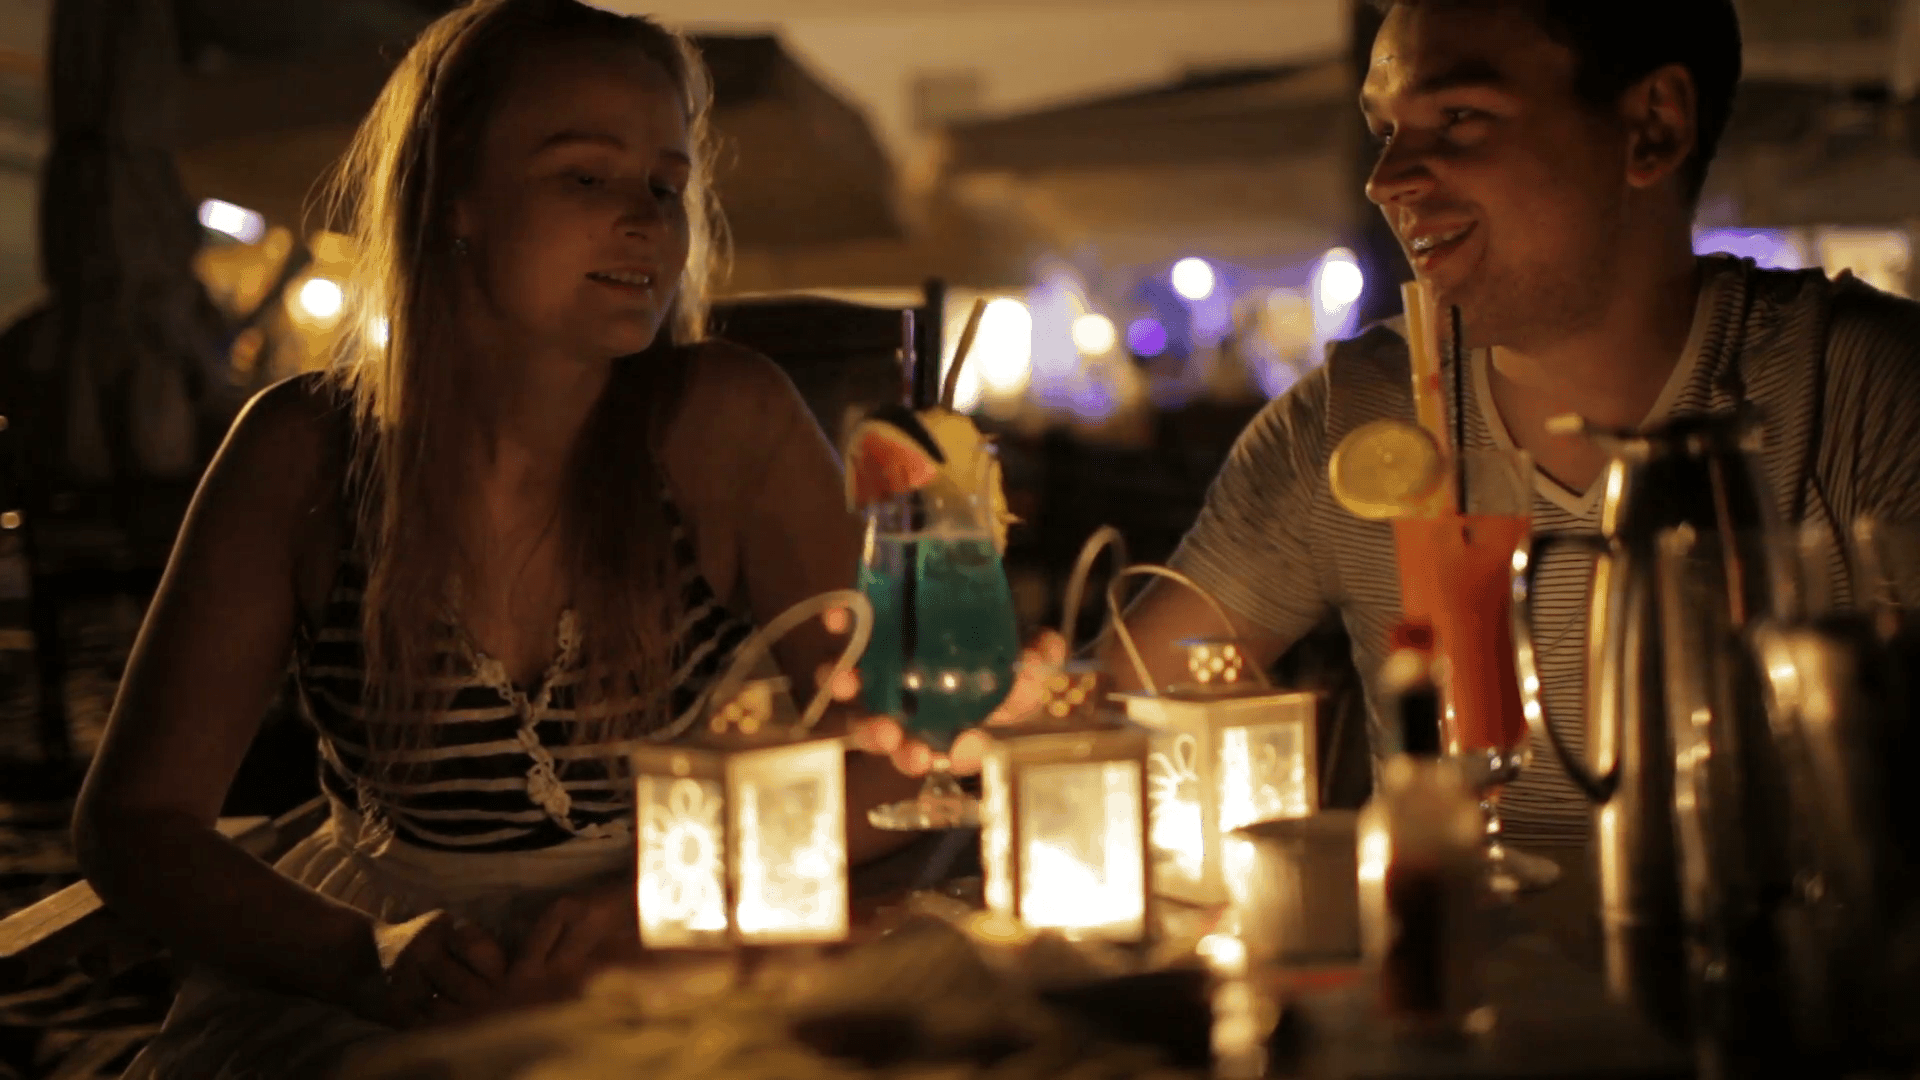 romantic-young-couple-enjoying-drinks-in-a-date-in-an-outdoor-bar-esplanade-by-night_xjgh2tzts__F0000